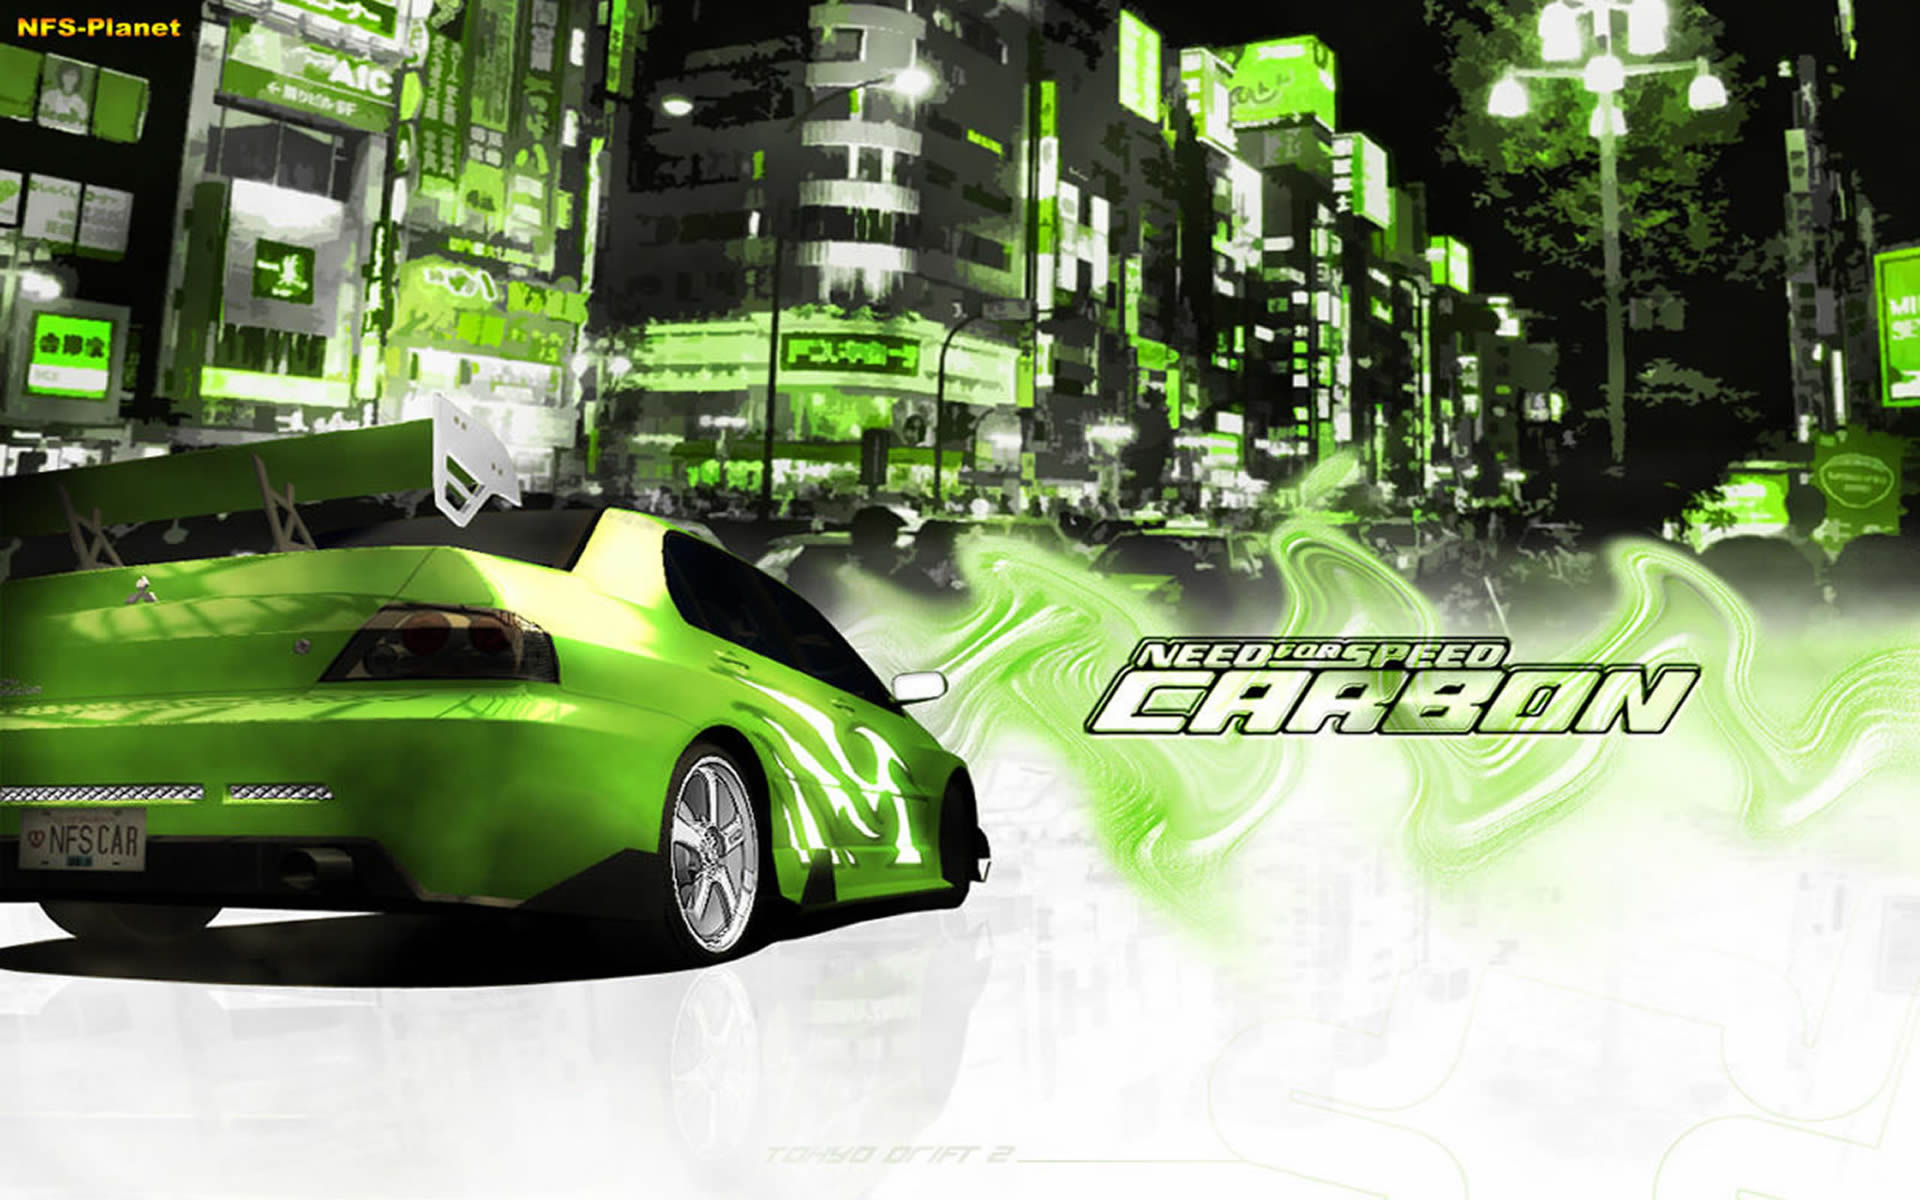 Nfs Carbon 4 Need For Speed Carbon Wallpaper